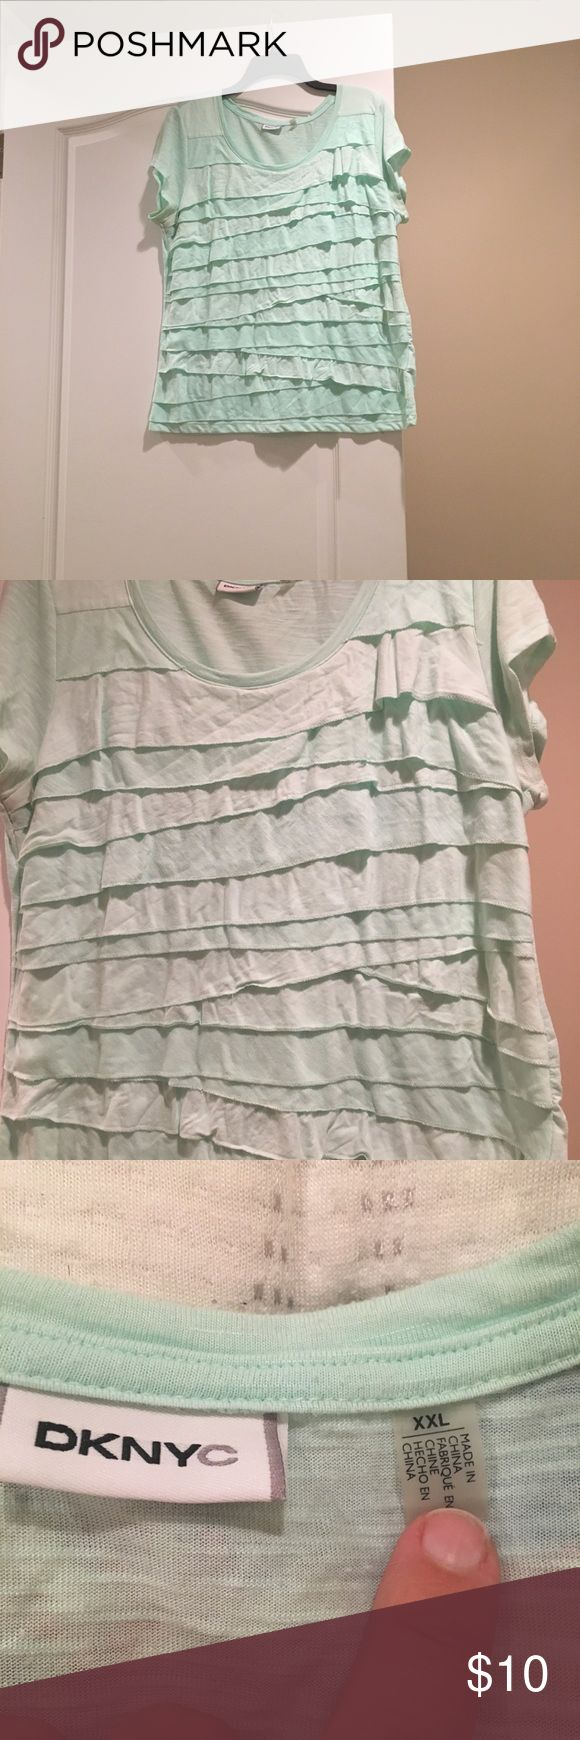 DKNYC XXL women's layered shirt. DKNYC XXL ladies shirt.  Layered sea green super fun shirt.  Worn by itself, under sports coat or light jacket.  Some wear at under arm wear jackets rubbed ( see photo) .  Otherwise no stains, tears or excess wear. Machine washable. DKNYC Tops Tees - Short Sleeve